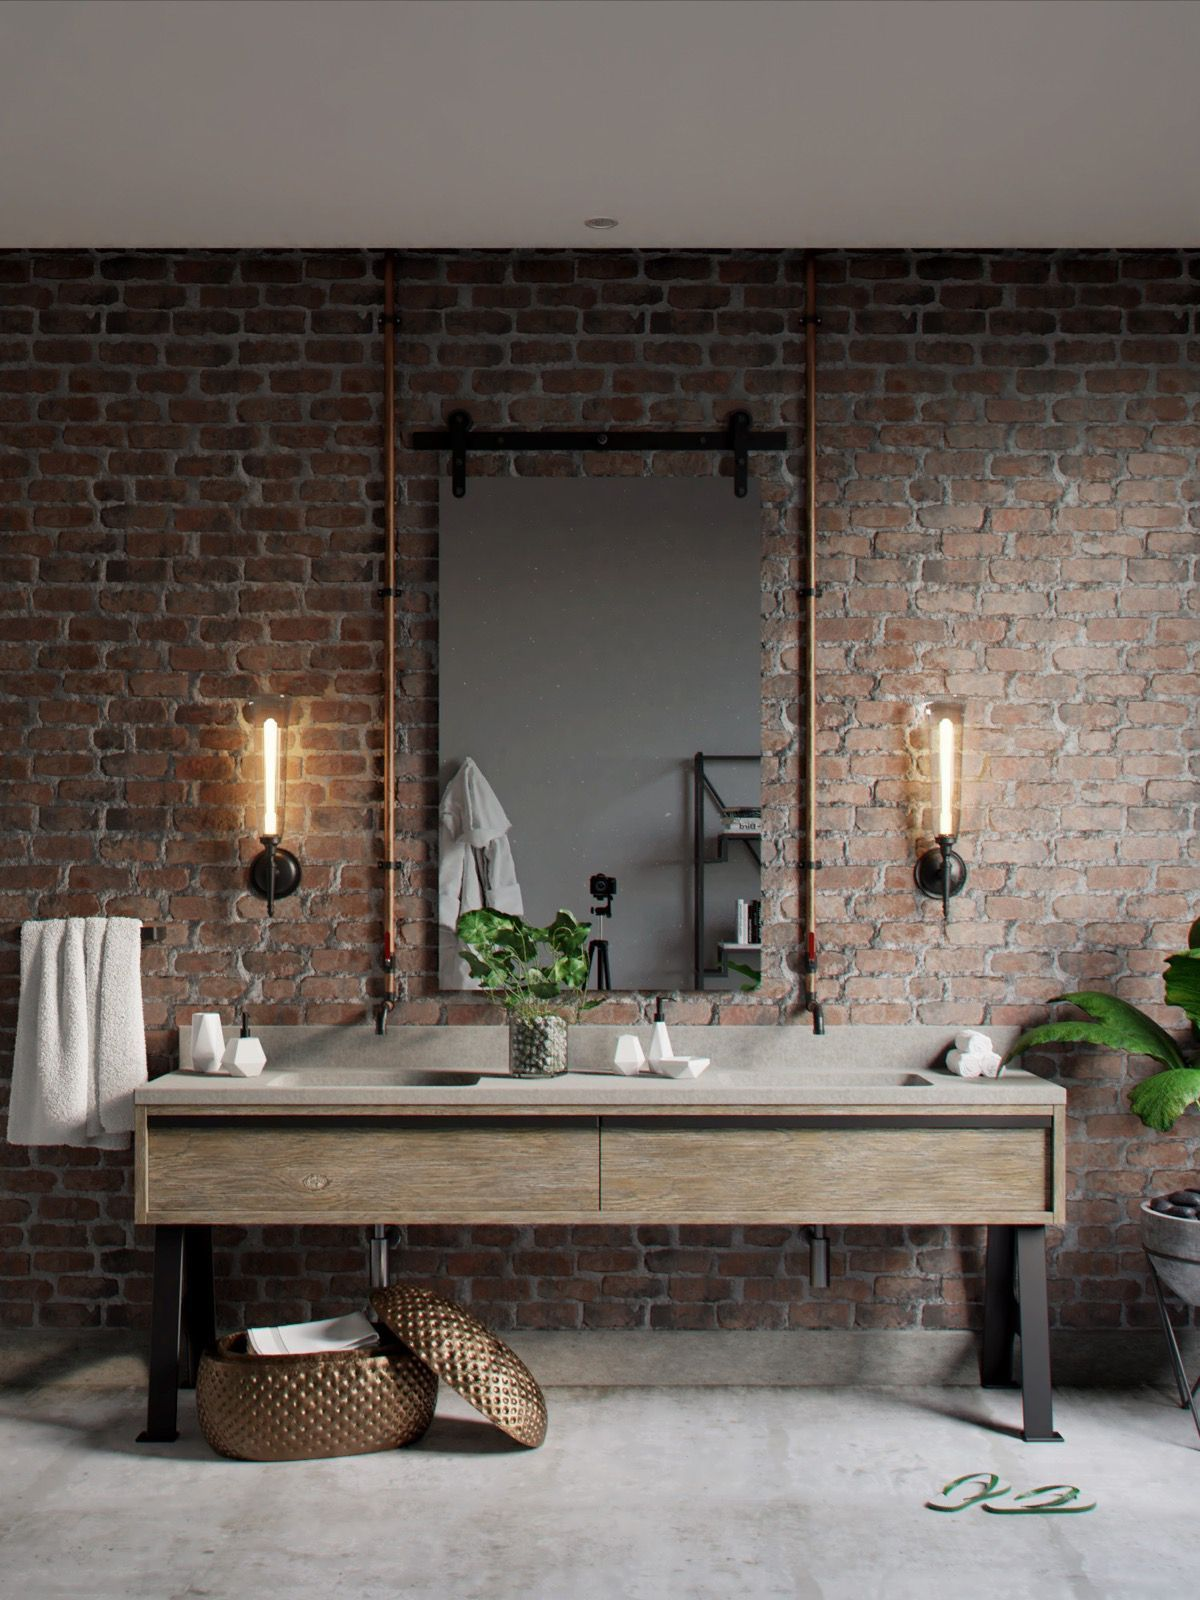 55 Bathroom Lighting Ideas For Every Style Modern Light Fixtures Amazing Bathrooms Industrial Bathroom Lighting Industrial Style Bathroom